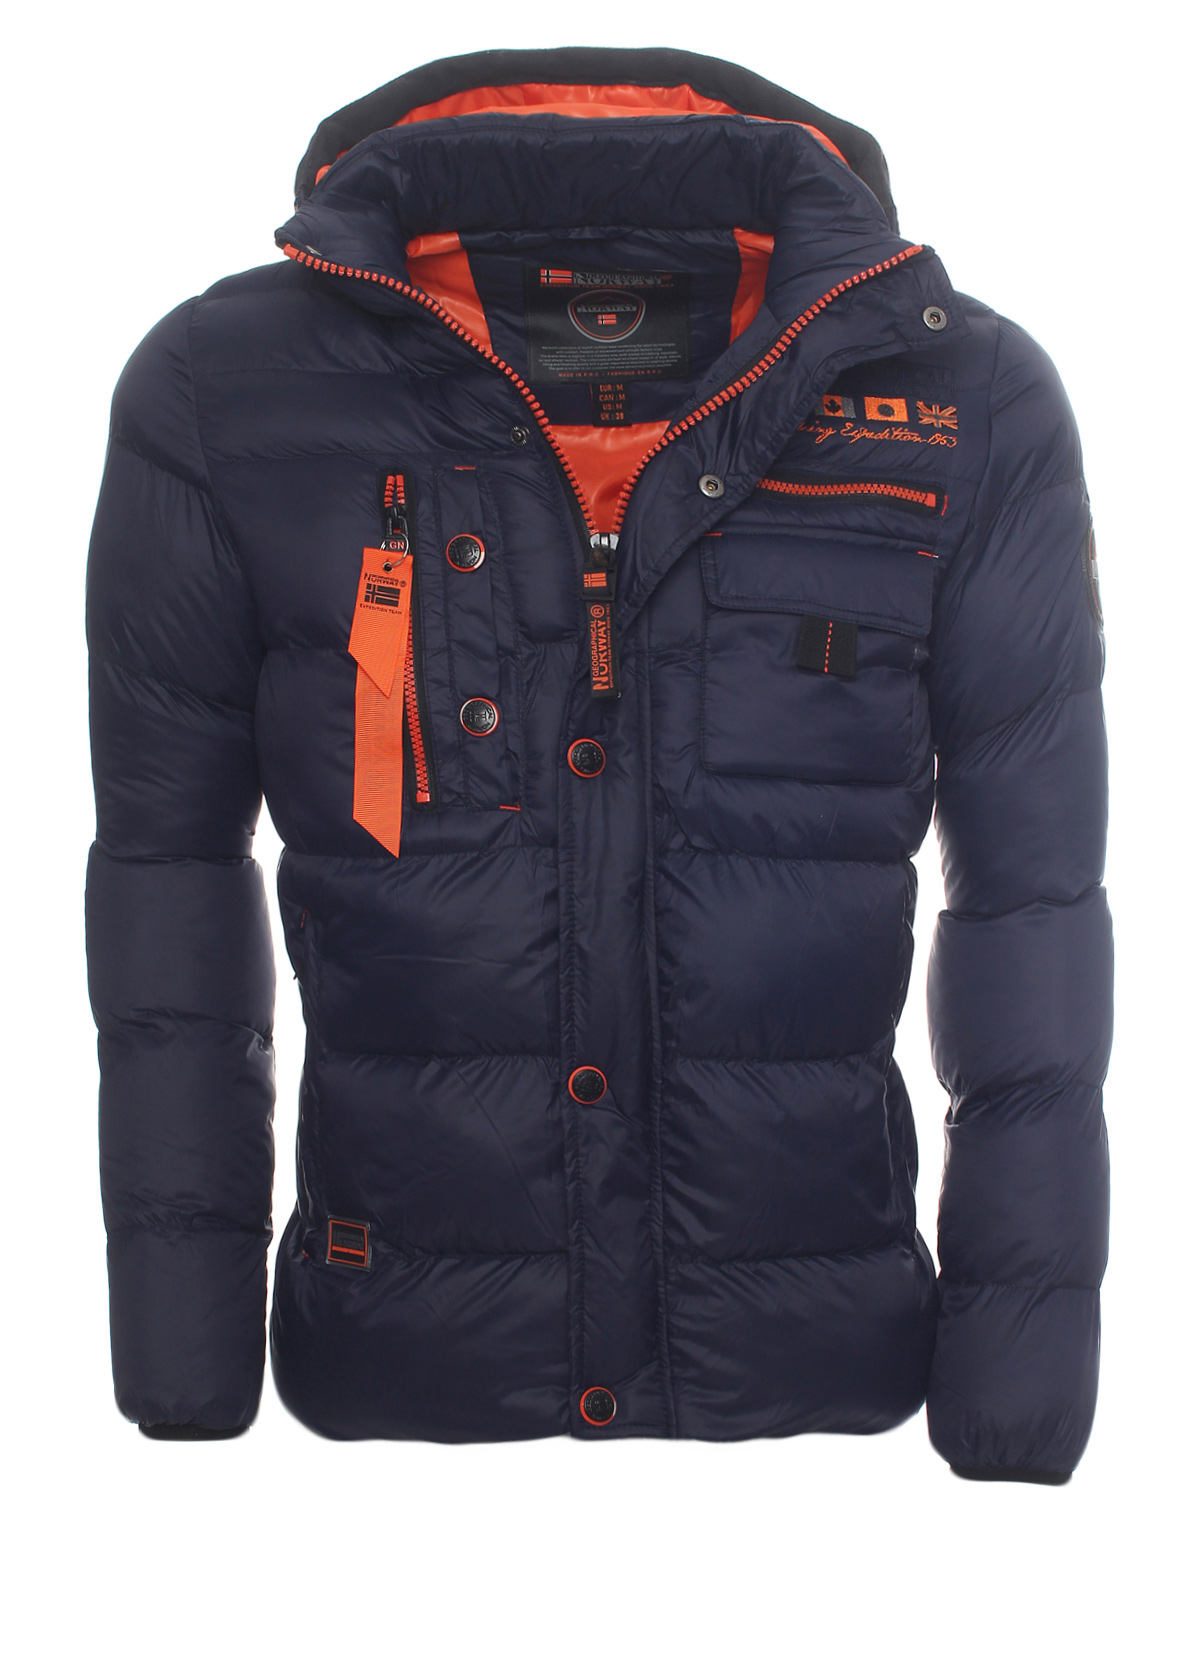 Wow Original Norway About Warm Details Jacket Geographical Show Lined Outdoor Title Men's Winter lJ1TcFK